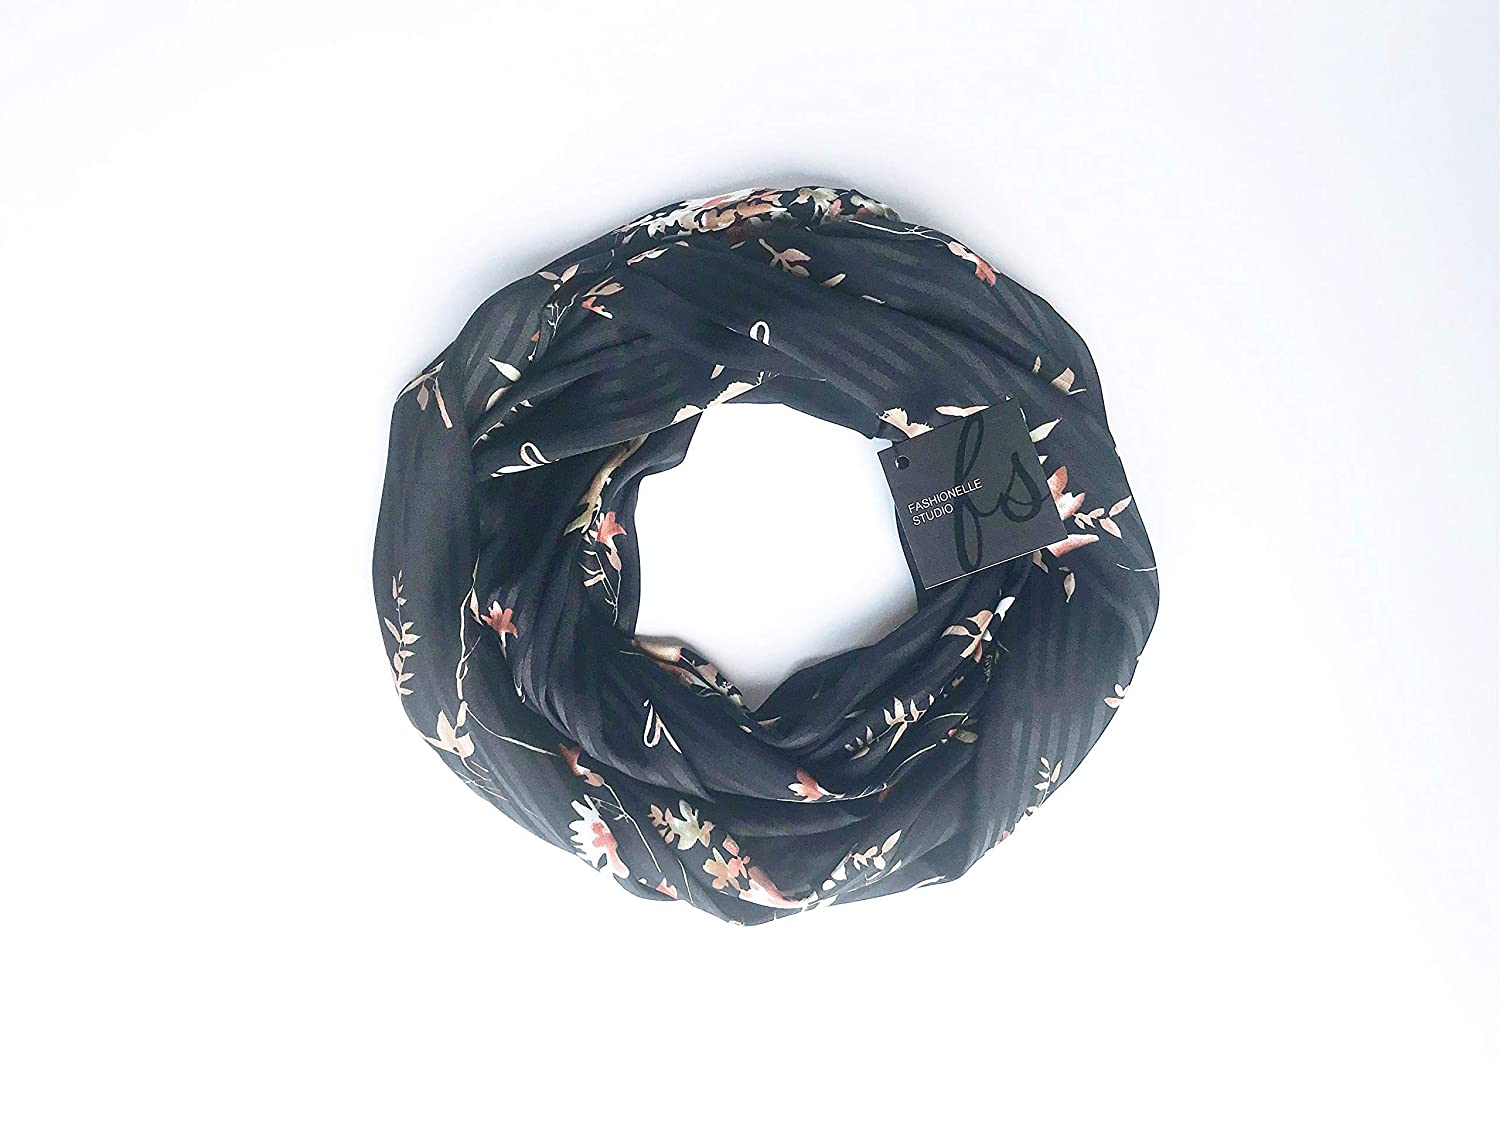 Black and Gold Scarf Satin Scarf Shiny Floral Infinity Scarf For Women Christmas Gift For Mom